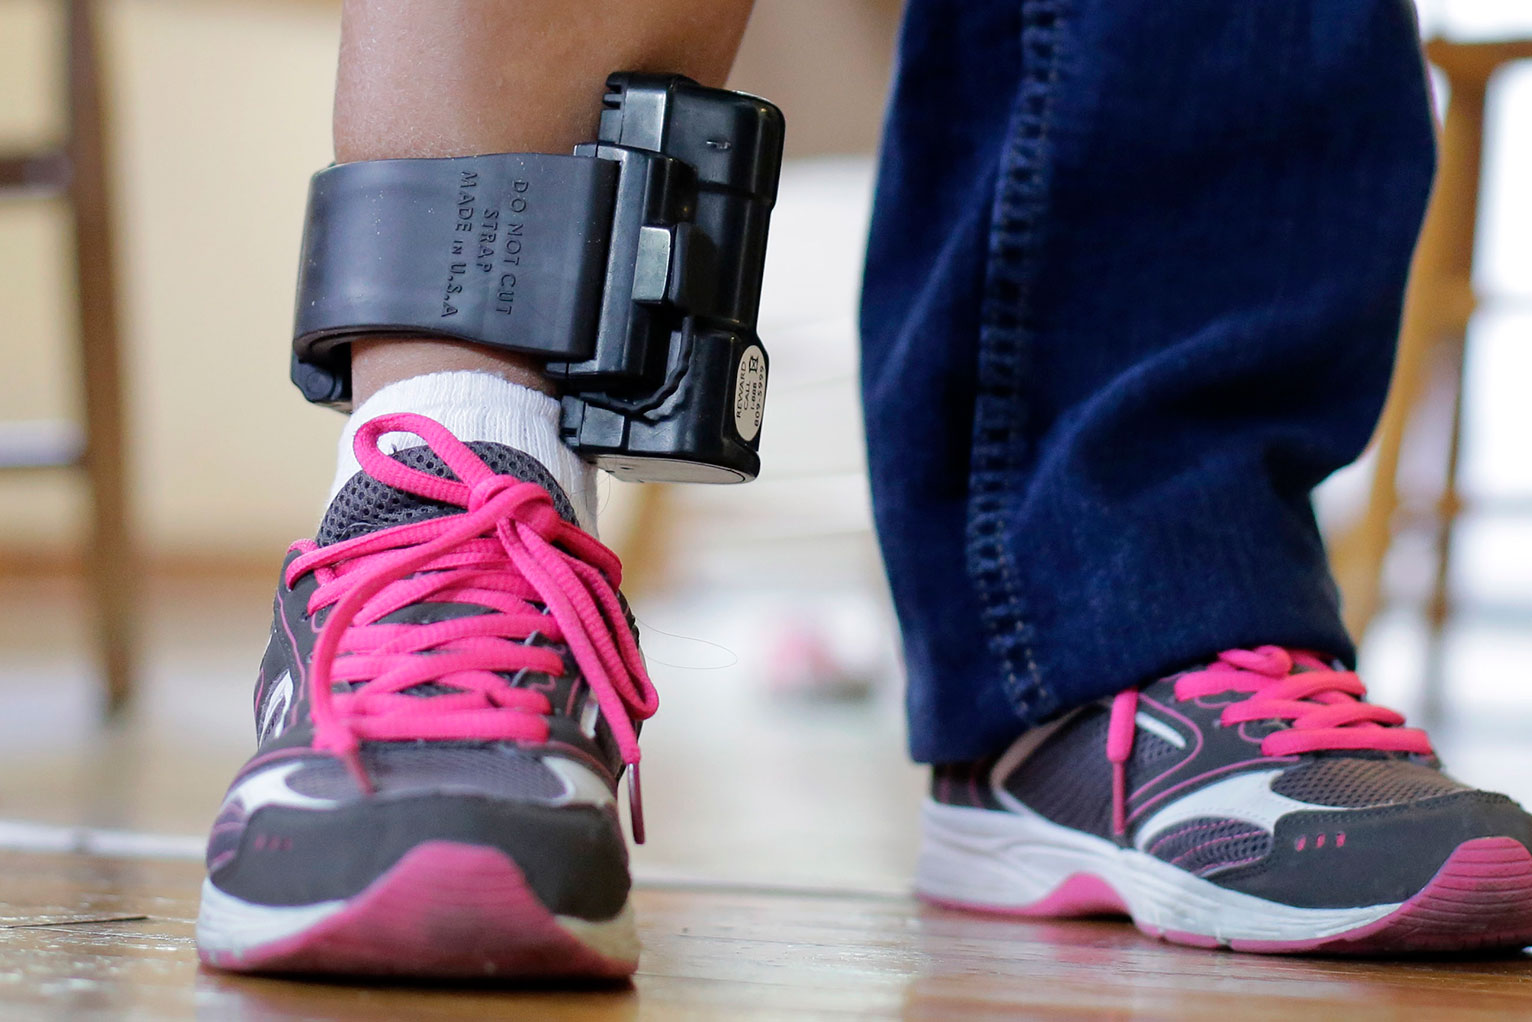 Gps Tracking Devices For Cars >> Use of Ankle Monitors Surges, but Effectiveness an Open Question | Data Mine | US News